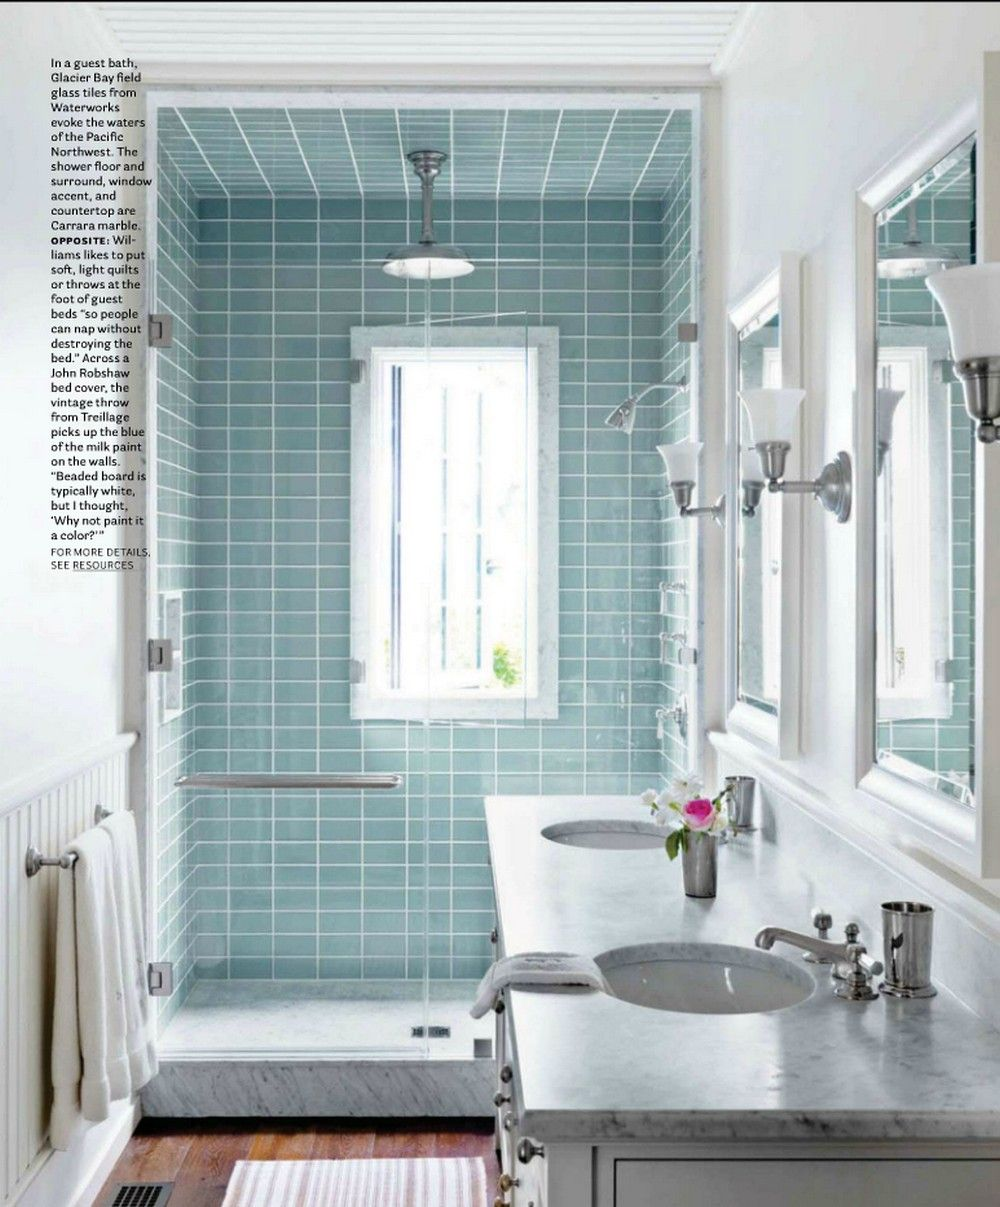 111 Fresh Subway Tiles Application for Your Bathroom | Subway tiles ...